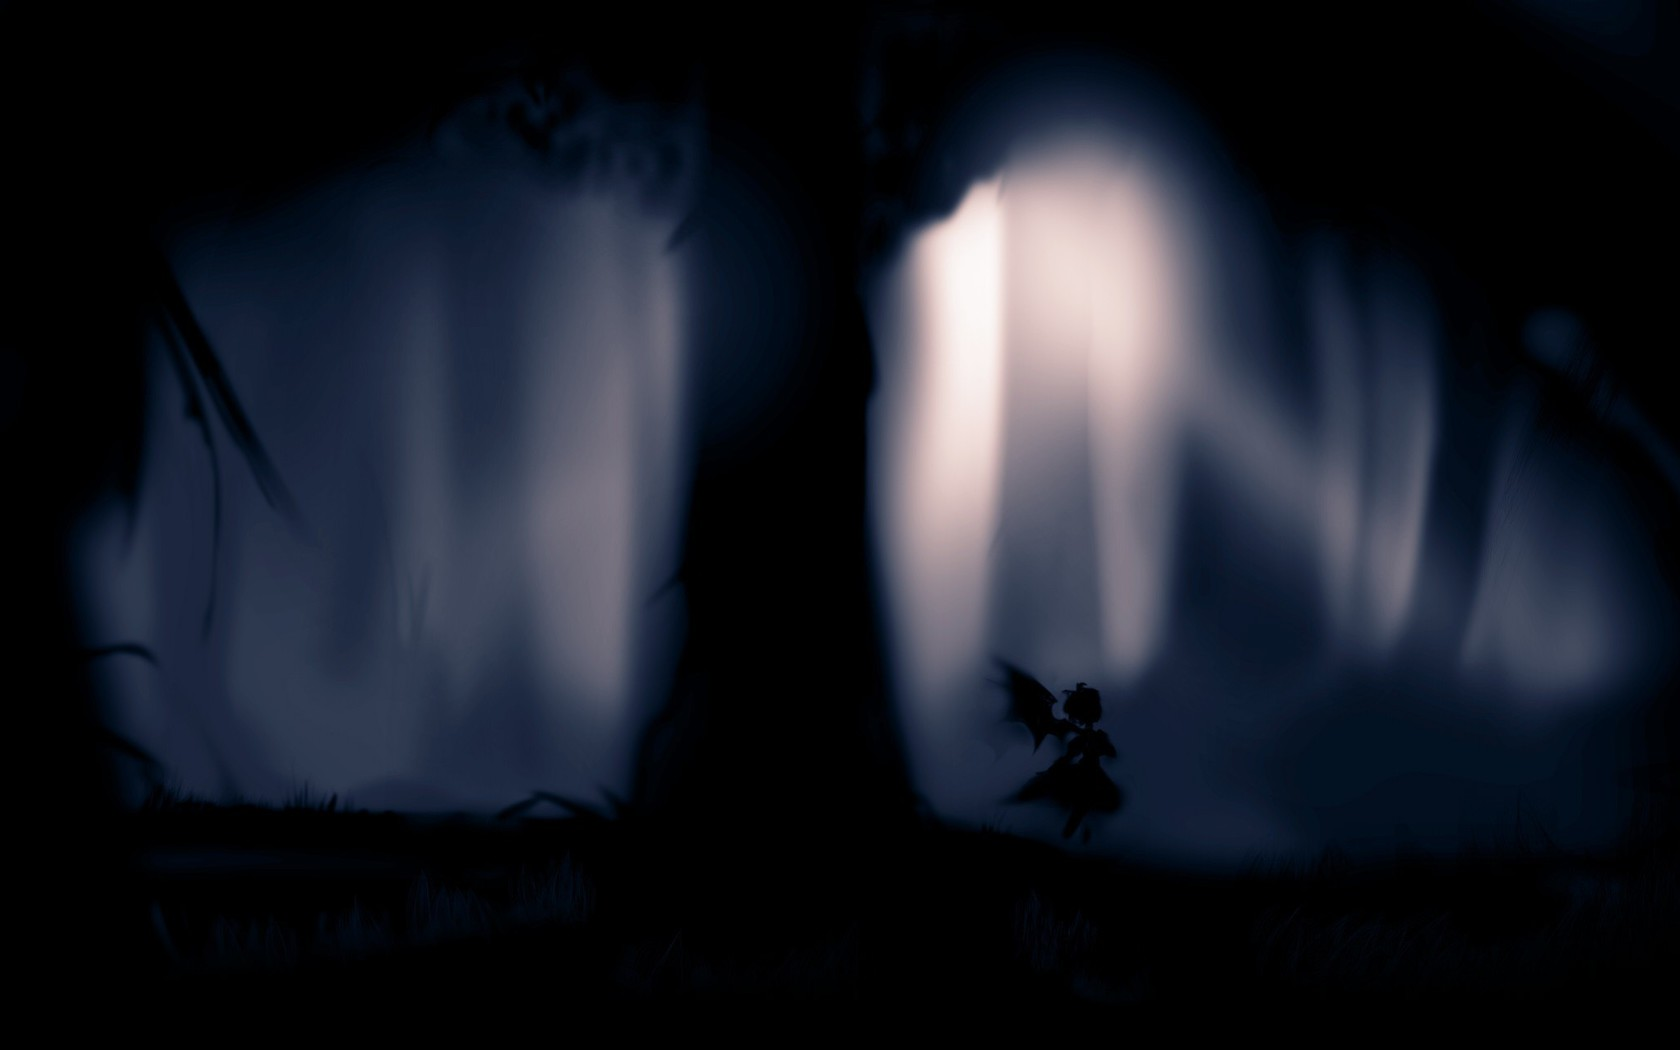 1920x1200 wallpaper forest silhouette - photo #2